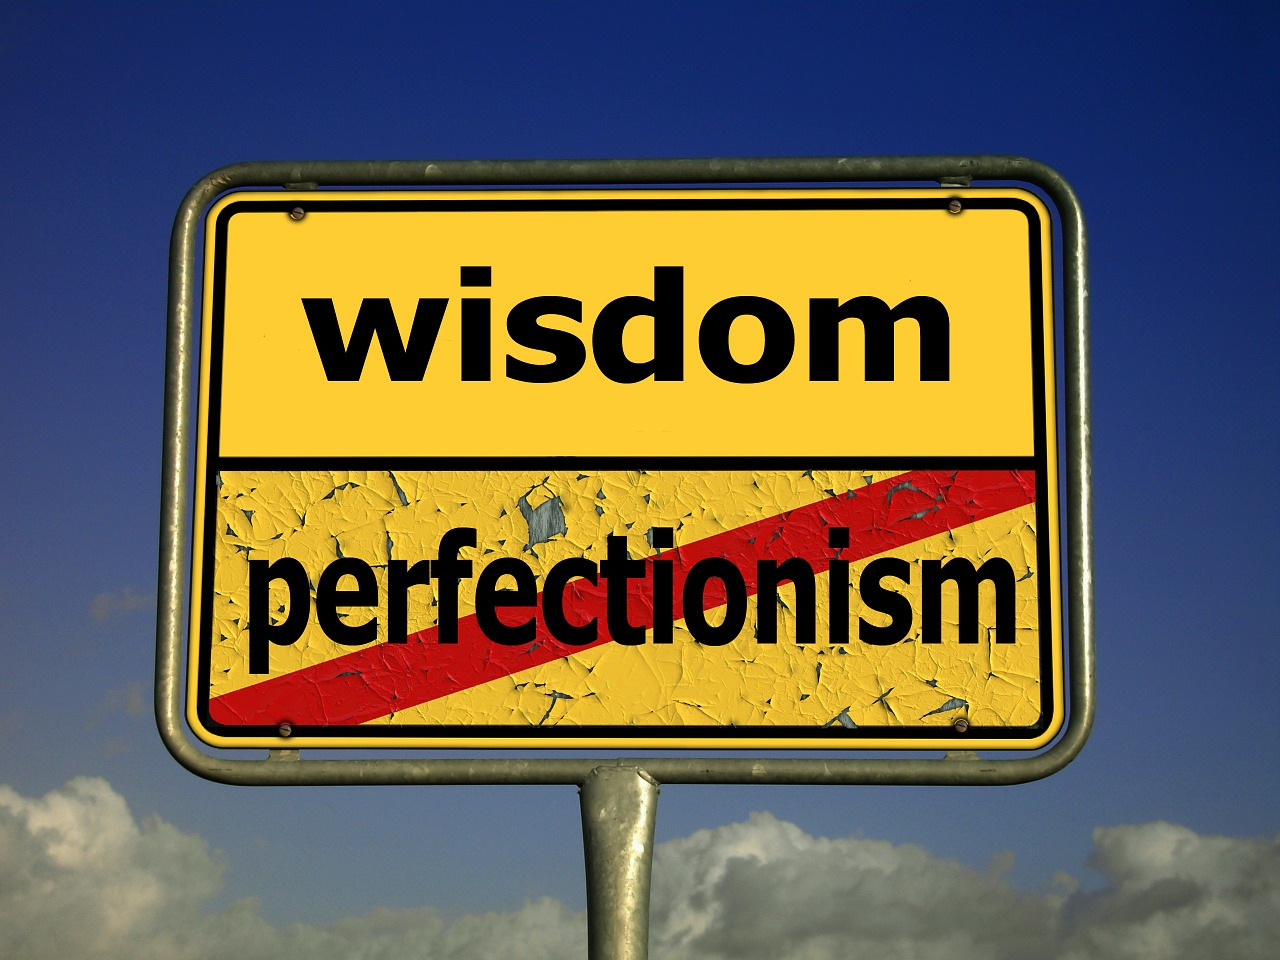 Has Your Perfectionism Gone Too Far?